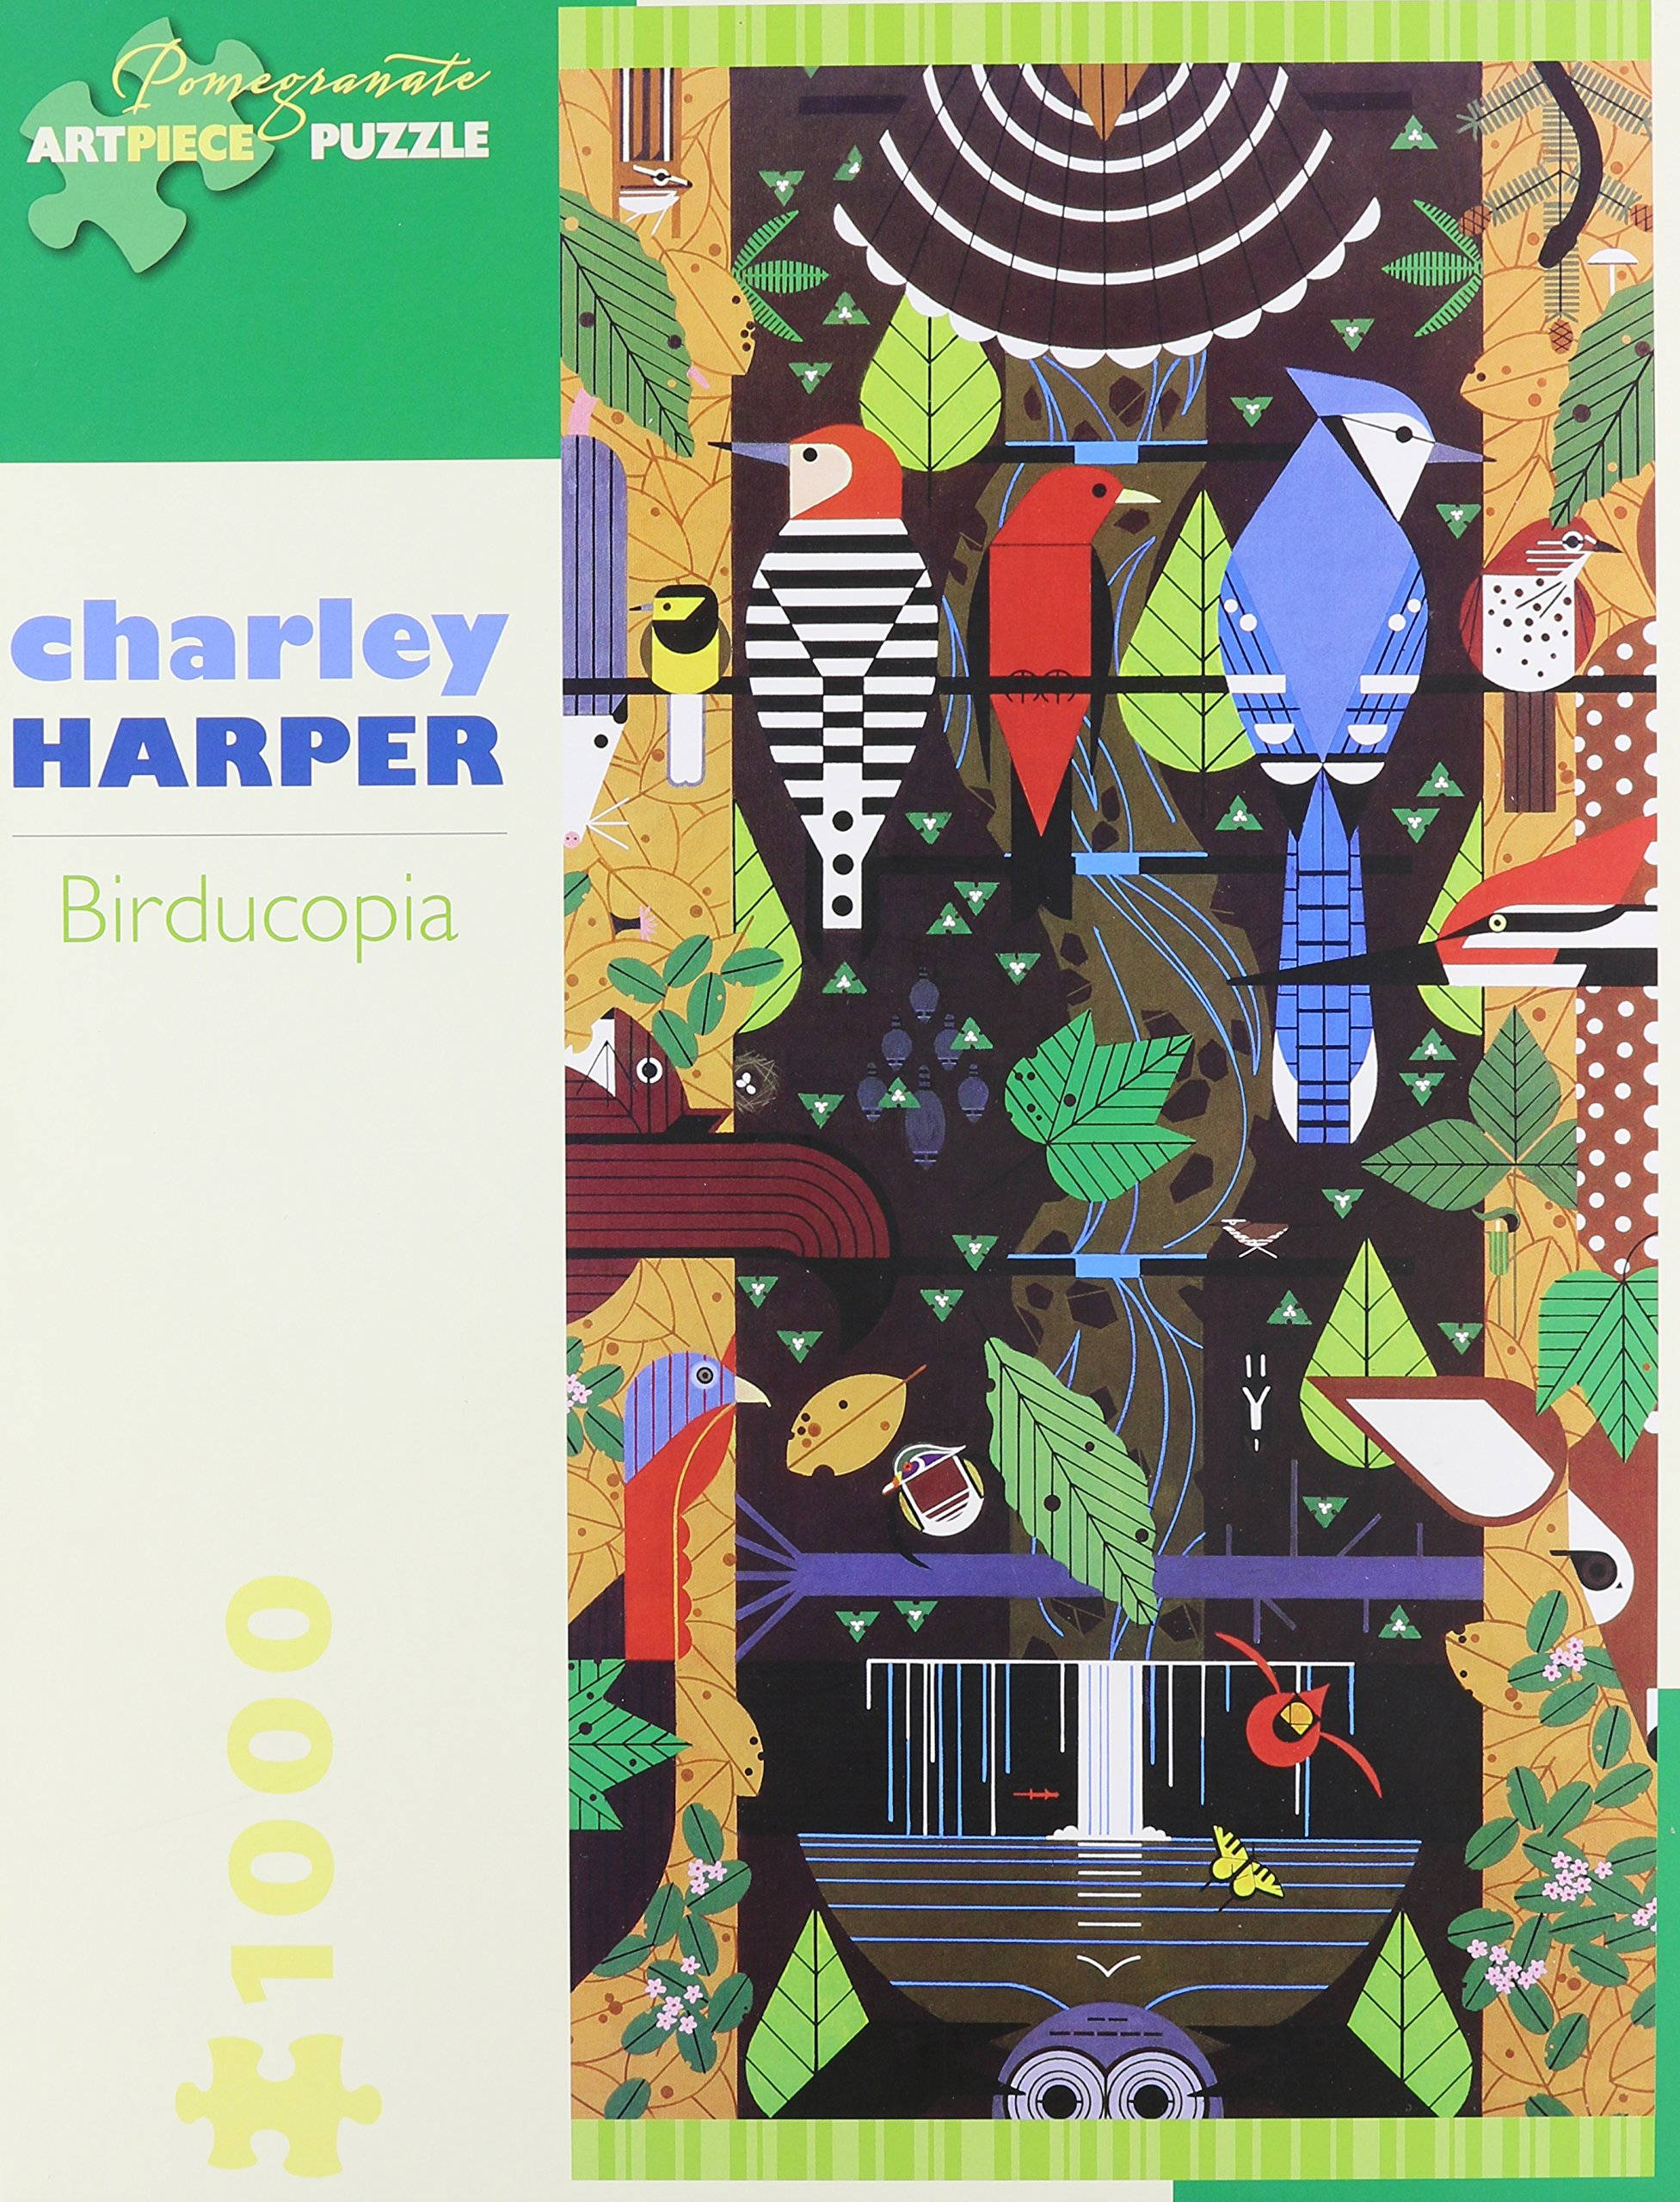 Charley Harper Birducopia 1000-Piece Jigsaw Puzzle Aa829 Pomegranate  Artpiece Puzzle: Amazon.co.uk: Charley Harper: Books